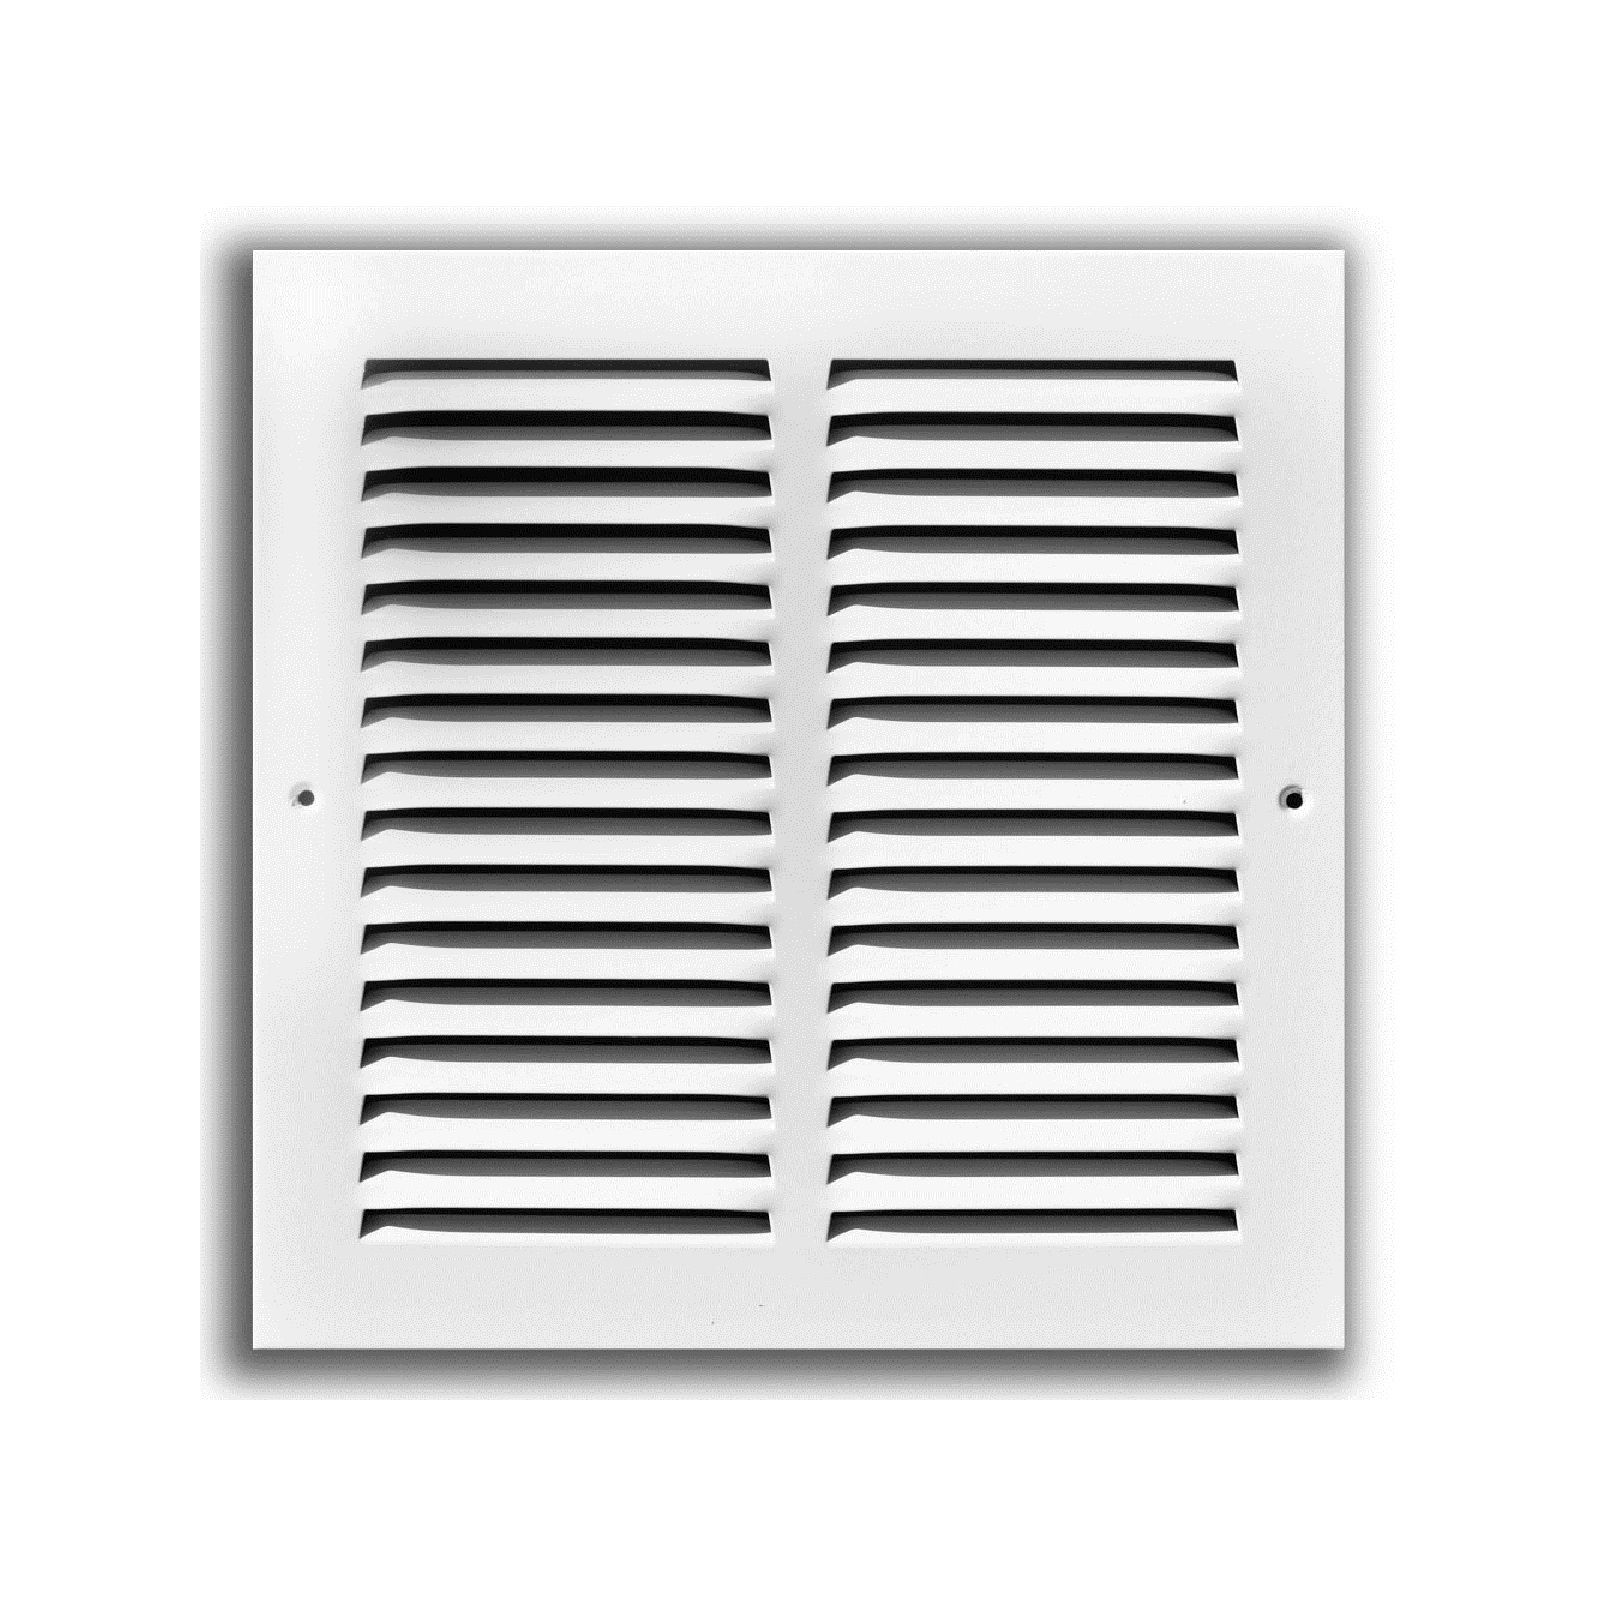 "TRUaire 170 20X06 - Steel Return Air Grille - 1/2"" Spaced Fin, White, 20"" X 06"""